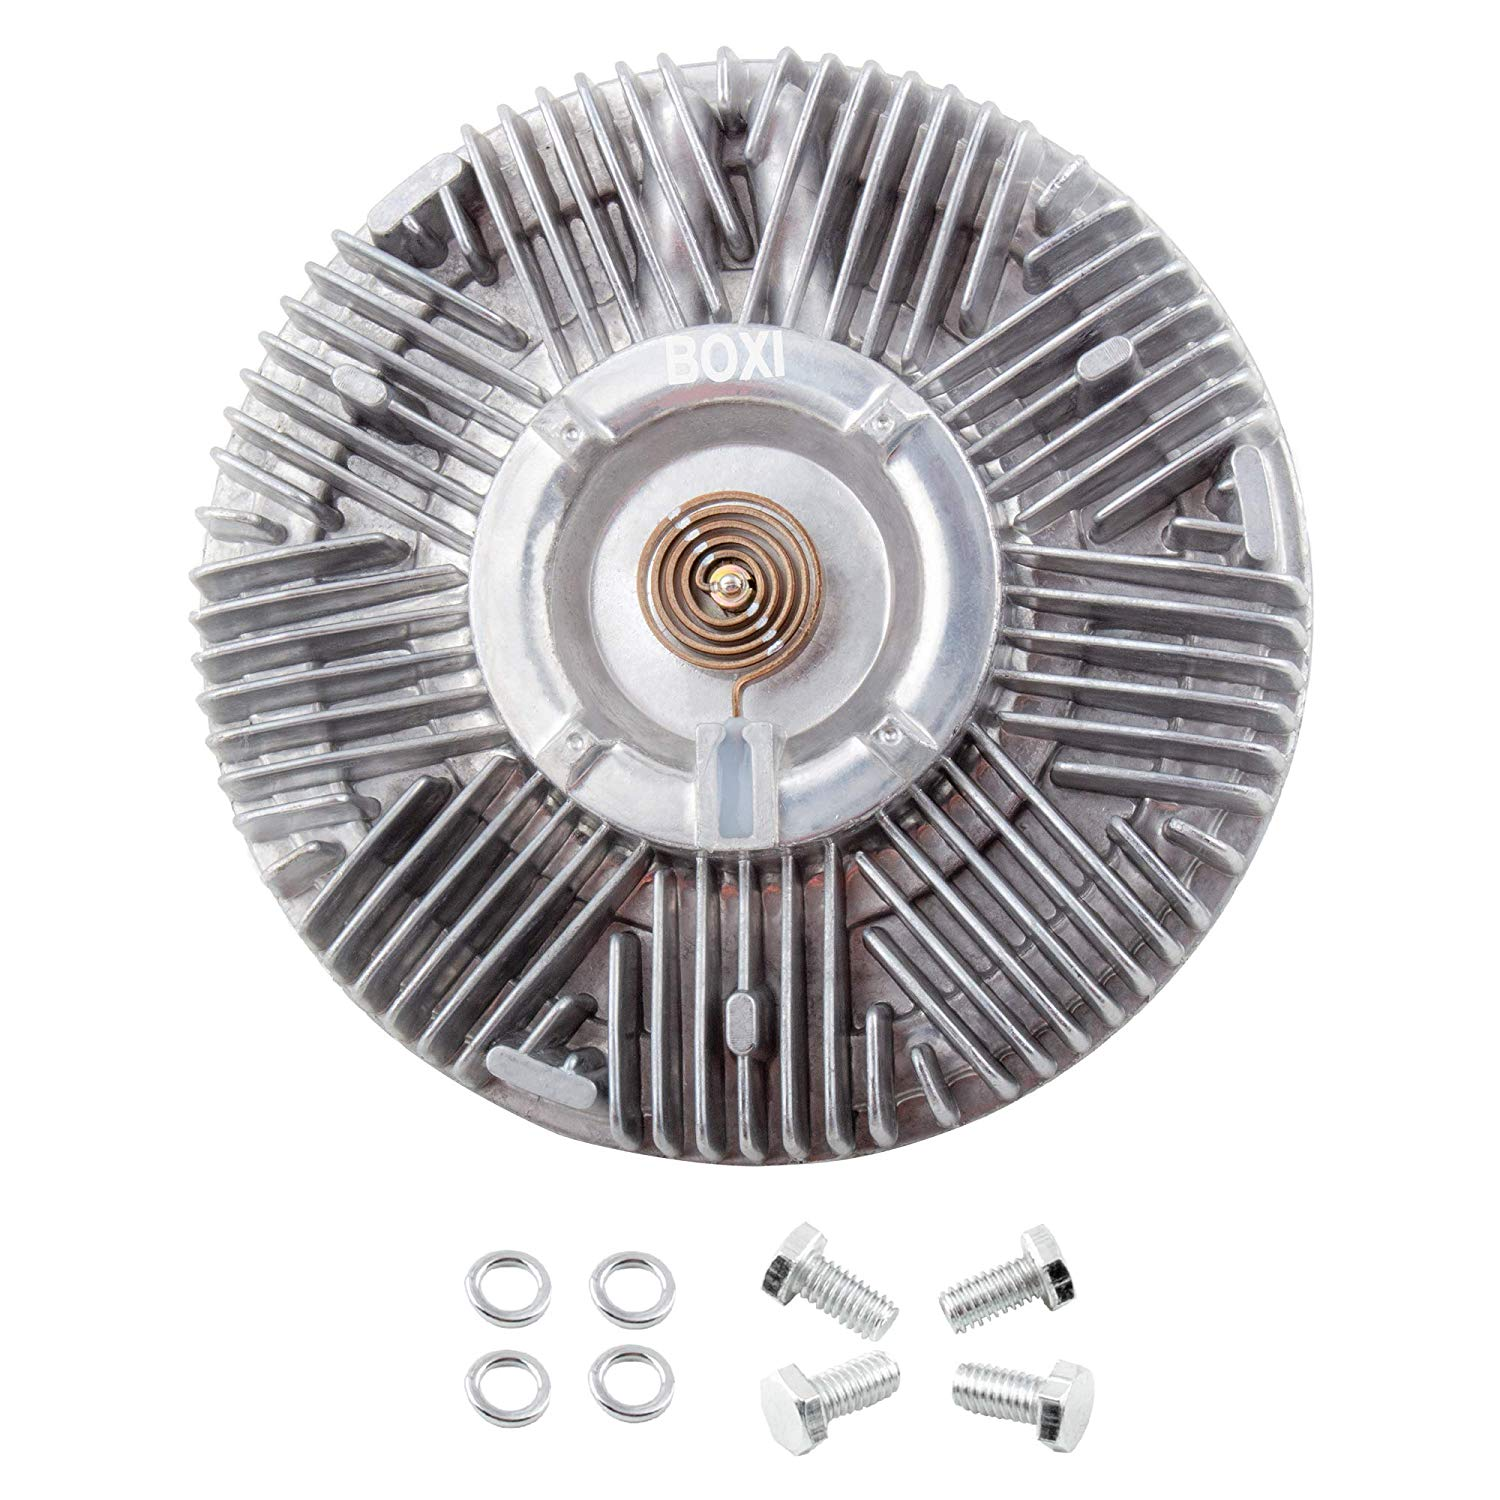 Jeep Comanche 1987-1992 2.4L 2.5L 4.0L Jeep Wrangler 1997-2006 Jeep Wagoneer 1987-1990 BOXI Engine Cooling Fan Clutch for Jeep Cherokee 1987-2001 Replaces 2625 36980